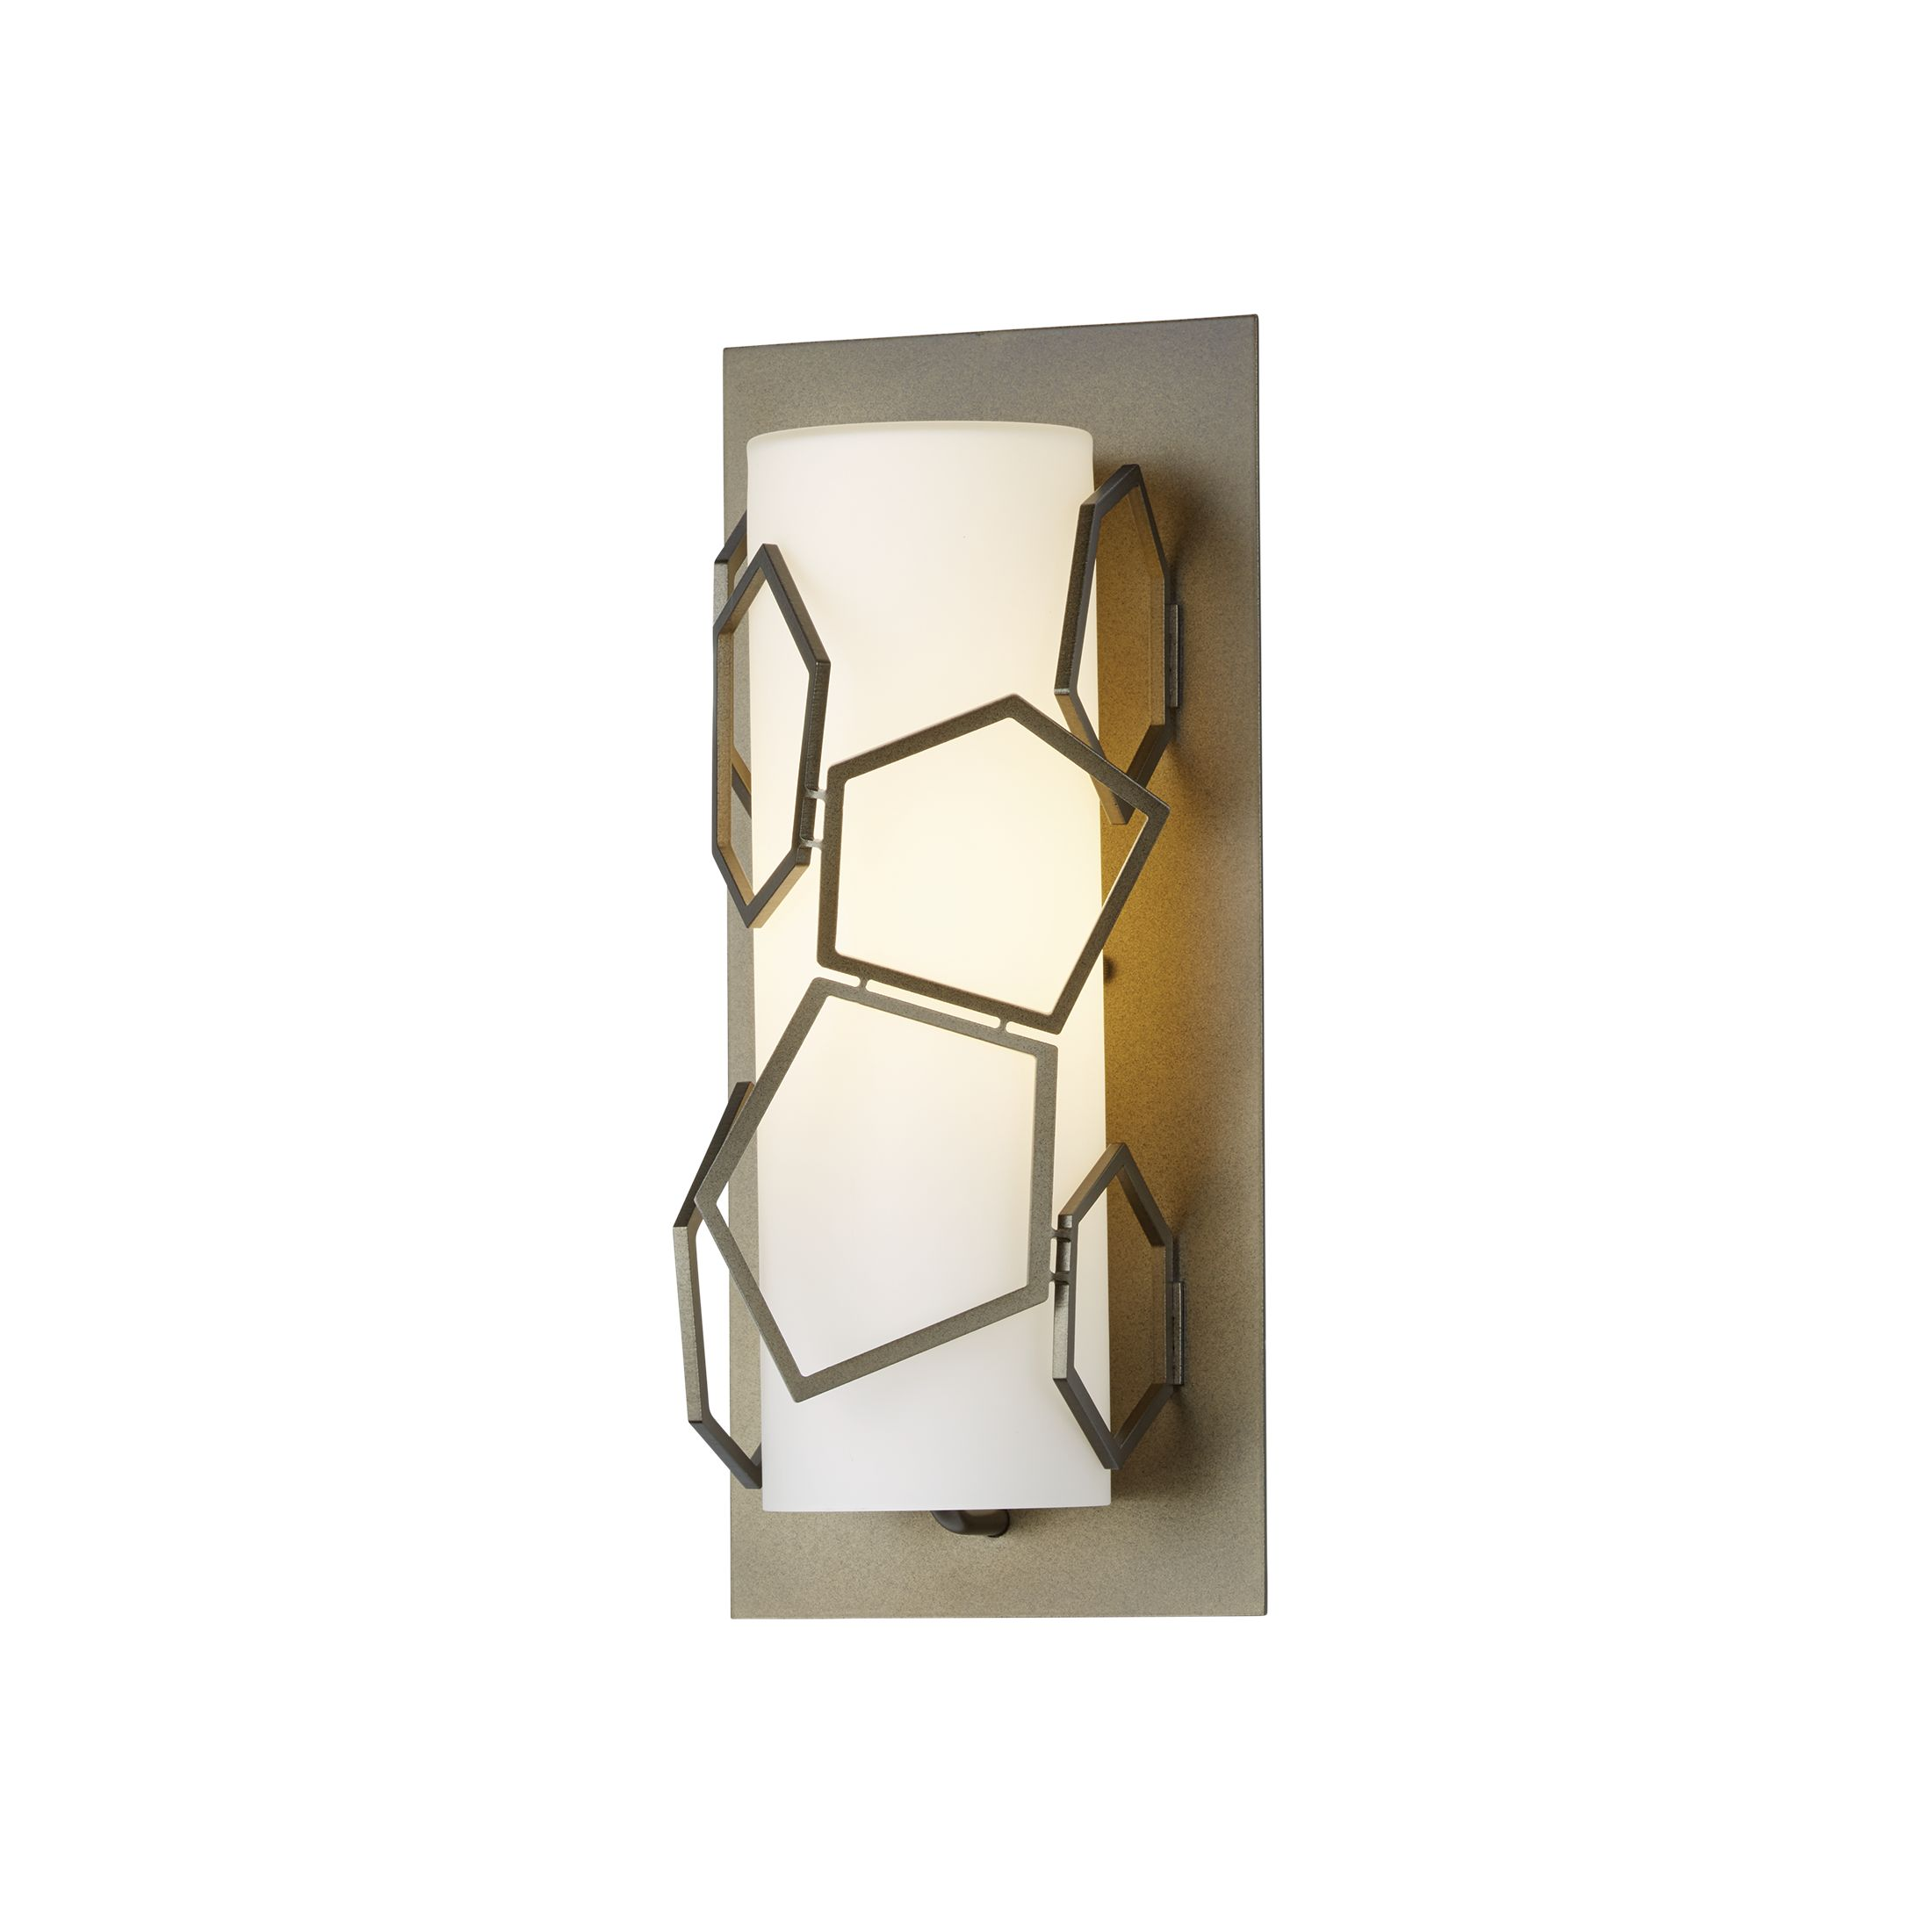 Thumbnail for Umbra Outdoor Sconce